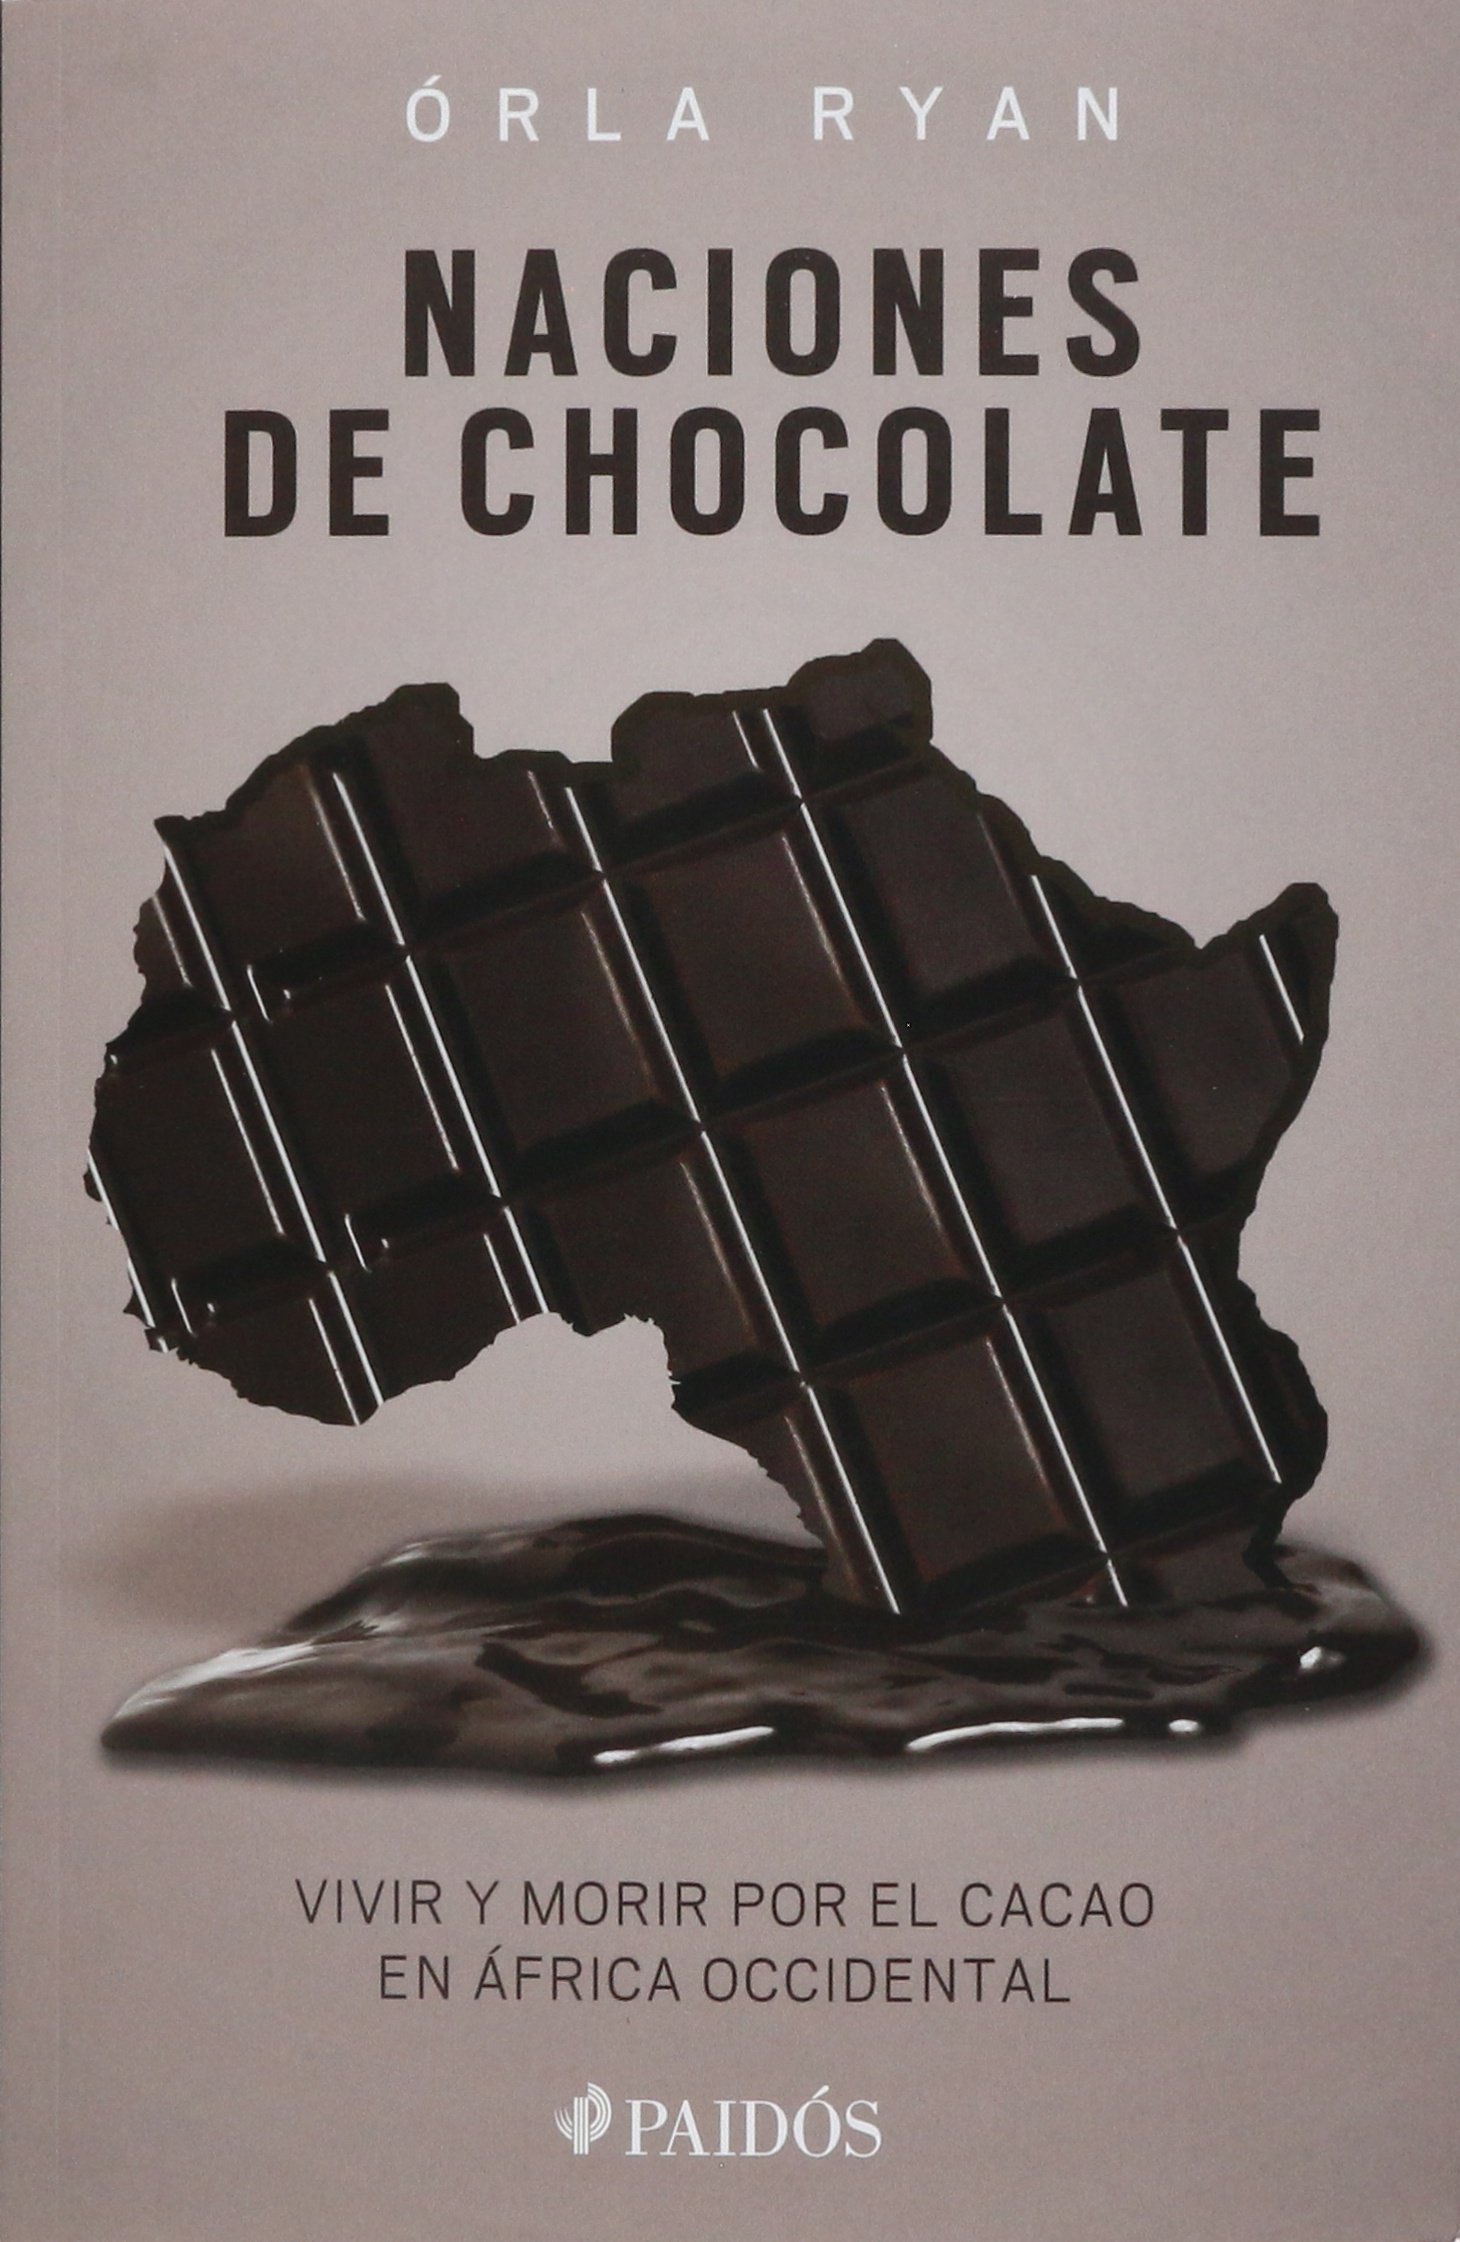 Naciones de chocolate: Vivir y morir por el cacao en África occidental